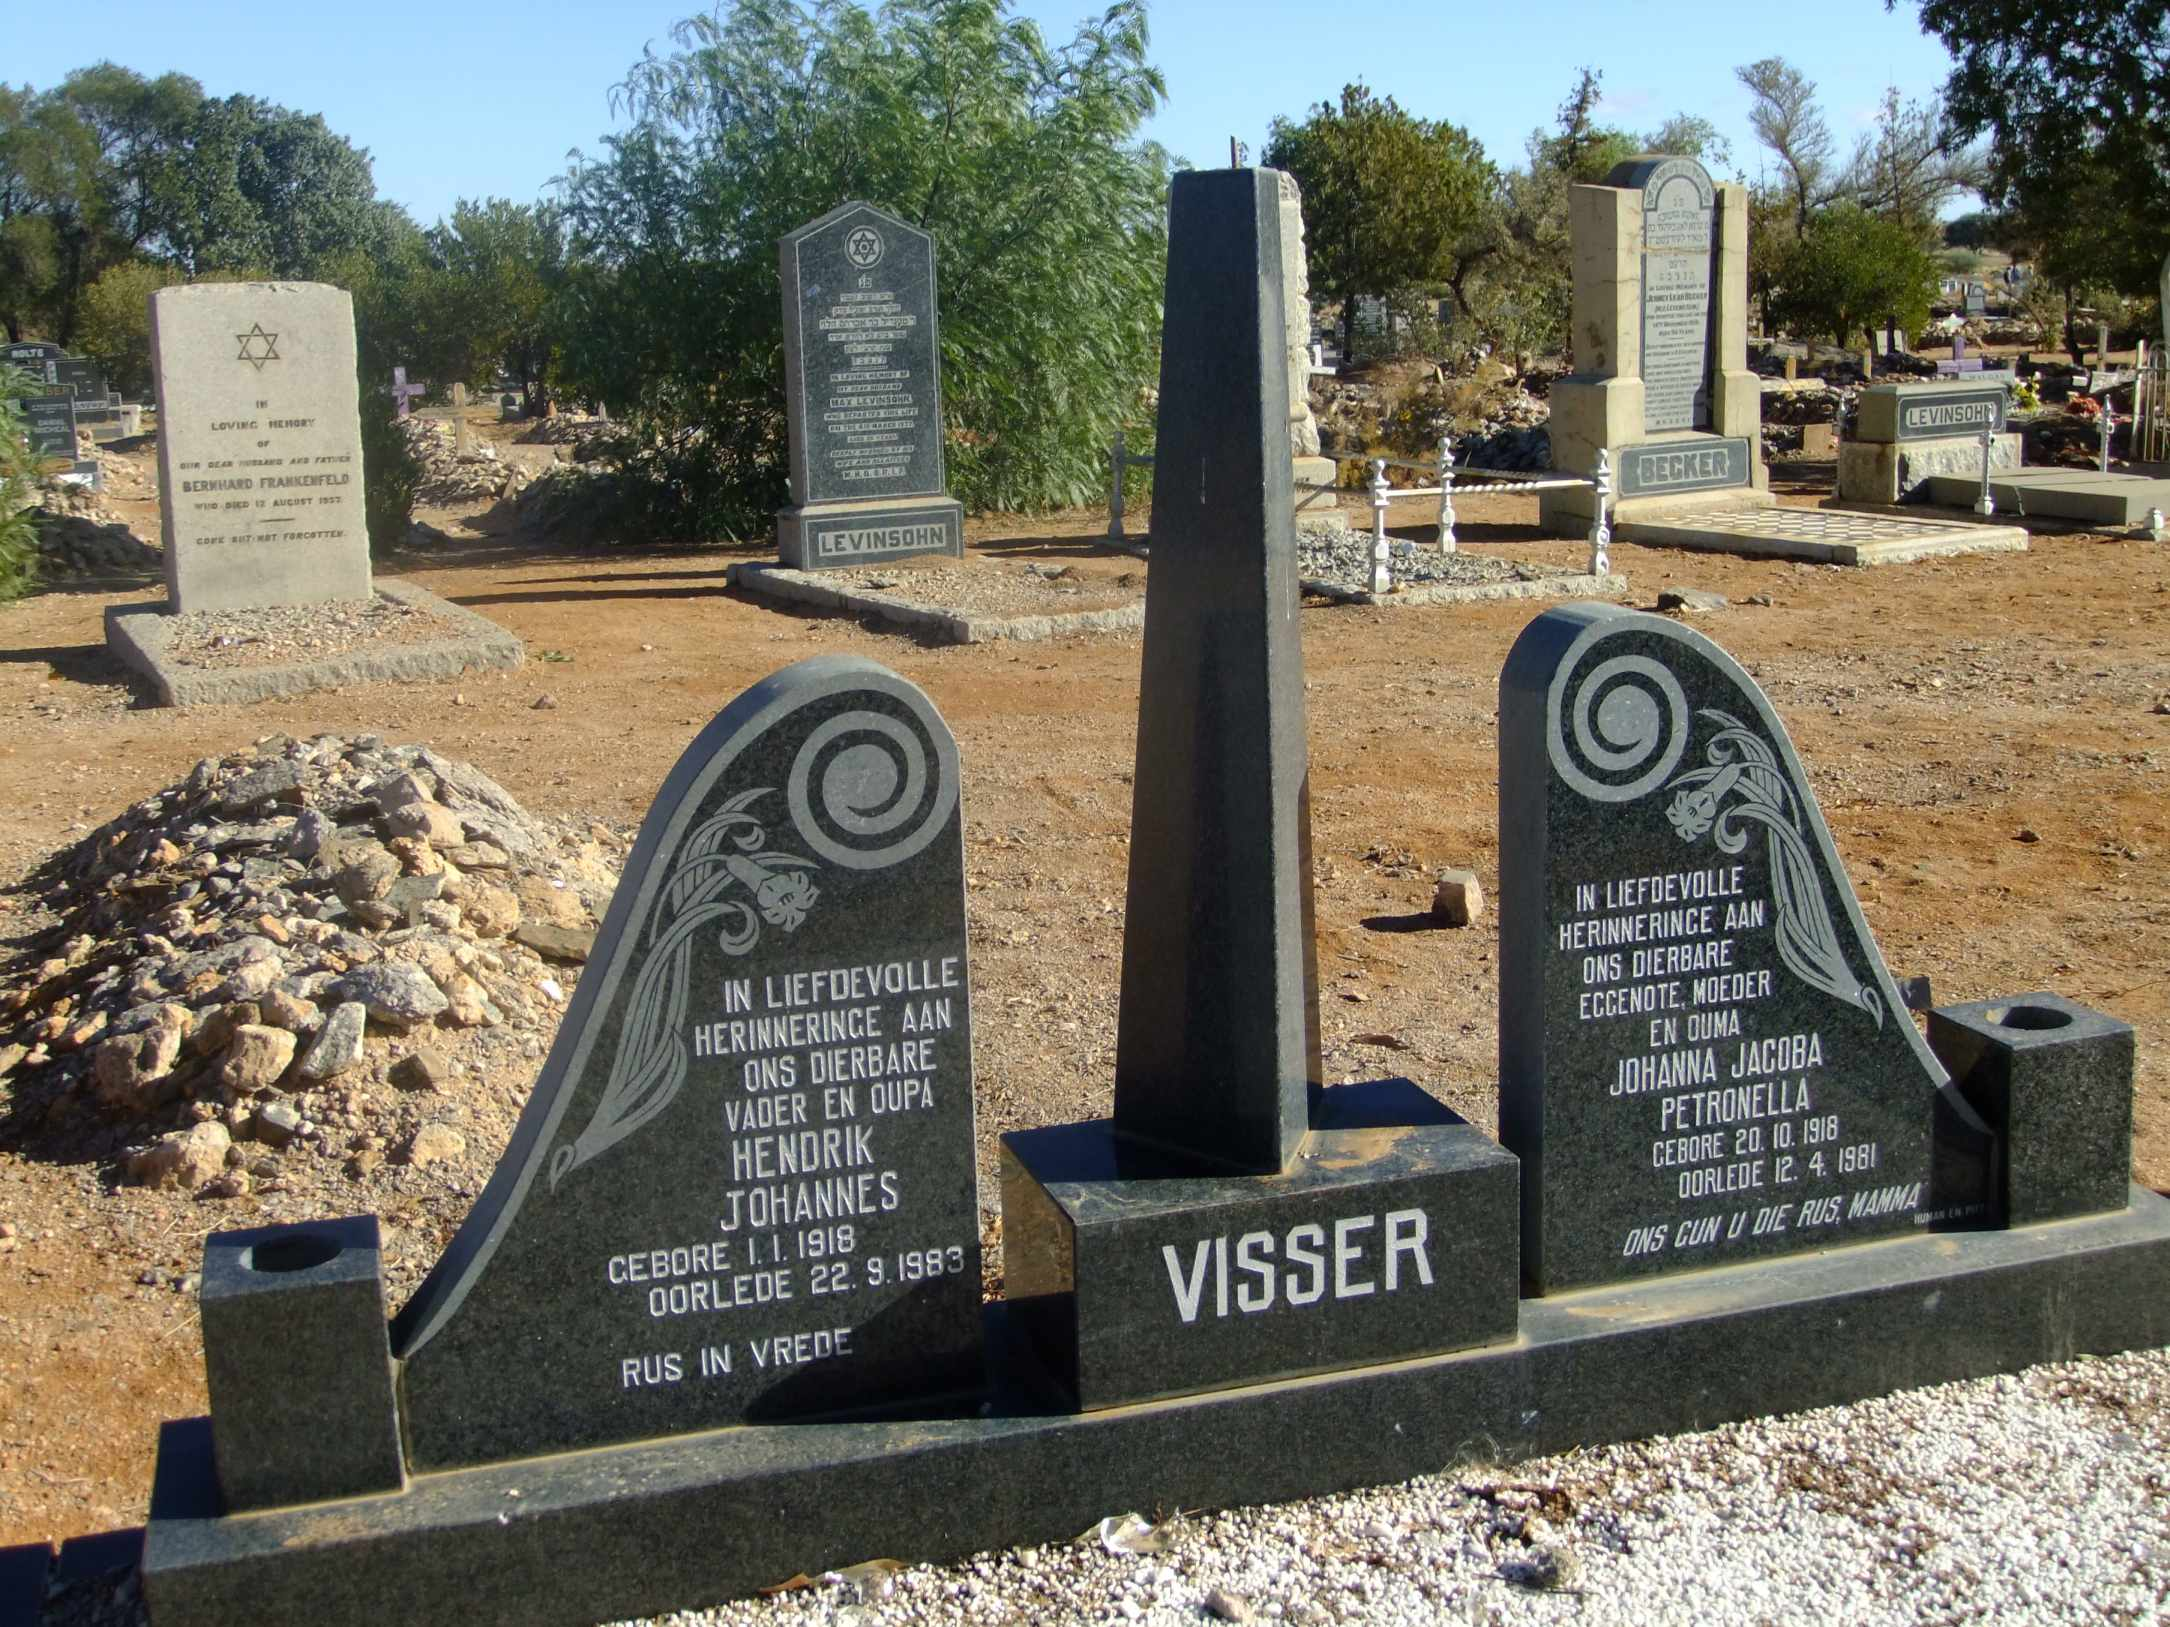 Visser, Hendrik Johannes born 01 January 1918 died 22 September 1983 and Johanna Jacoba Petronella born 20 October 1918 died 12 April 1981